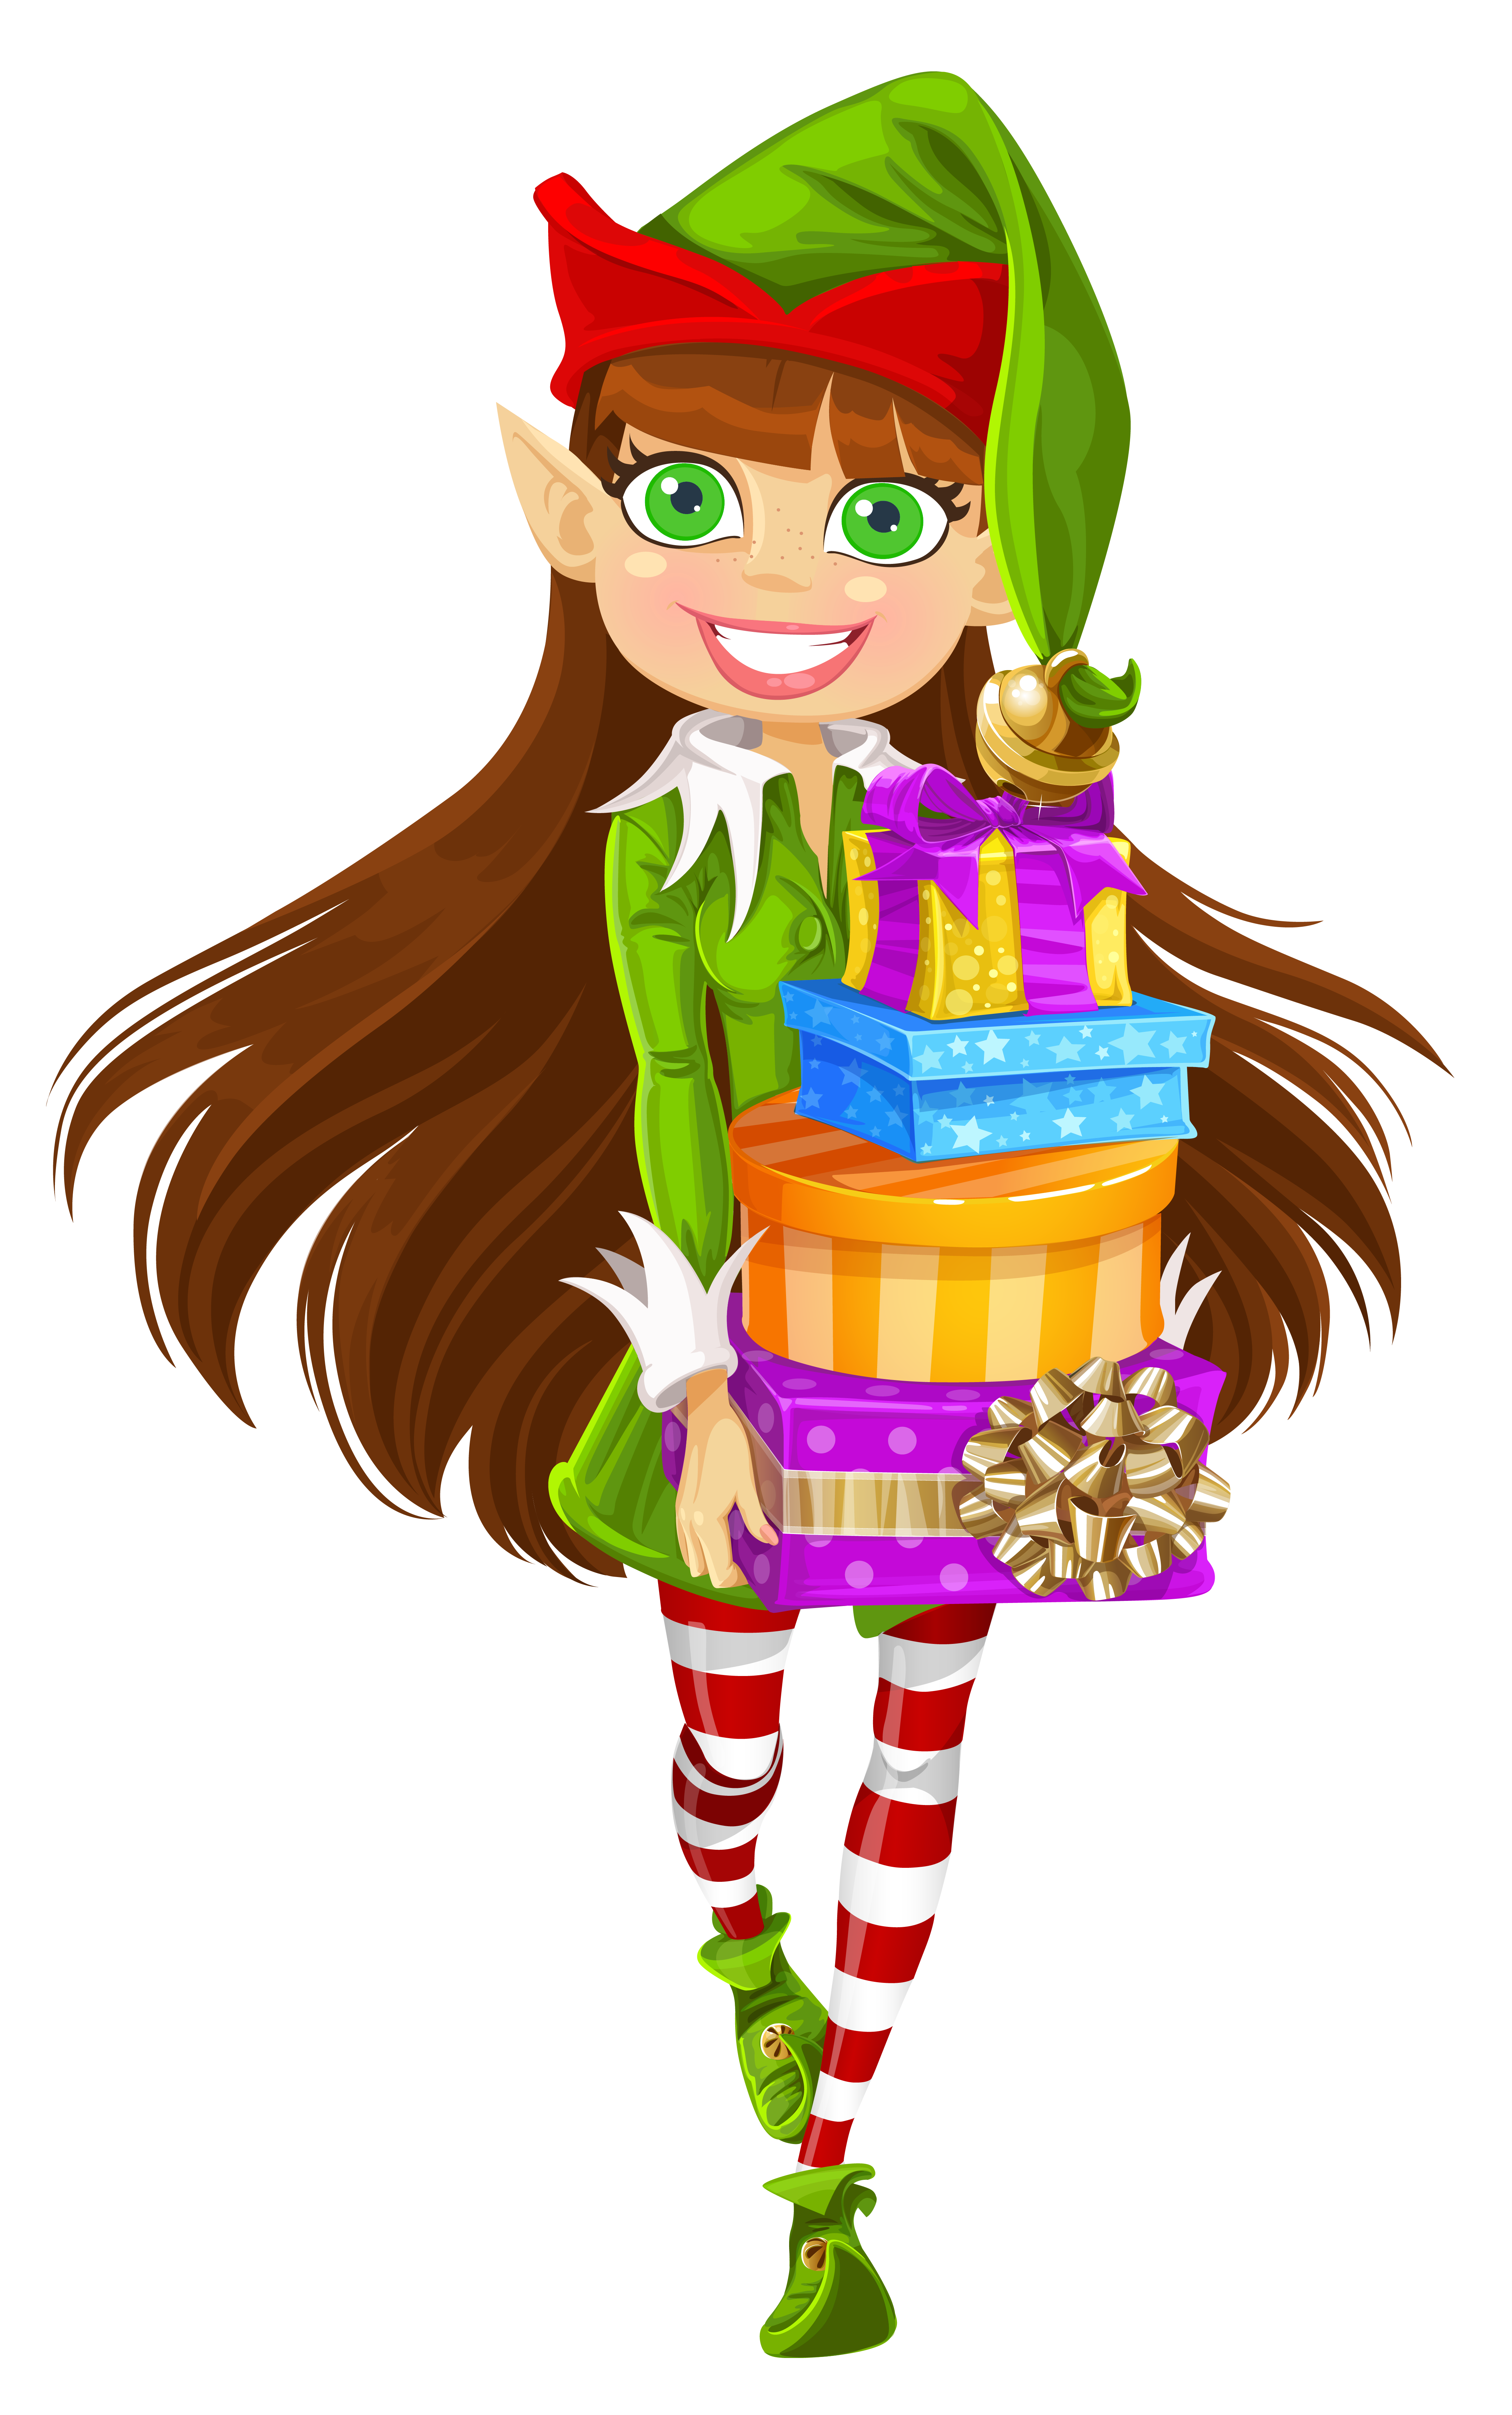 Lady clipart christmas. Girl elf with gifts